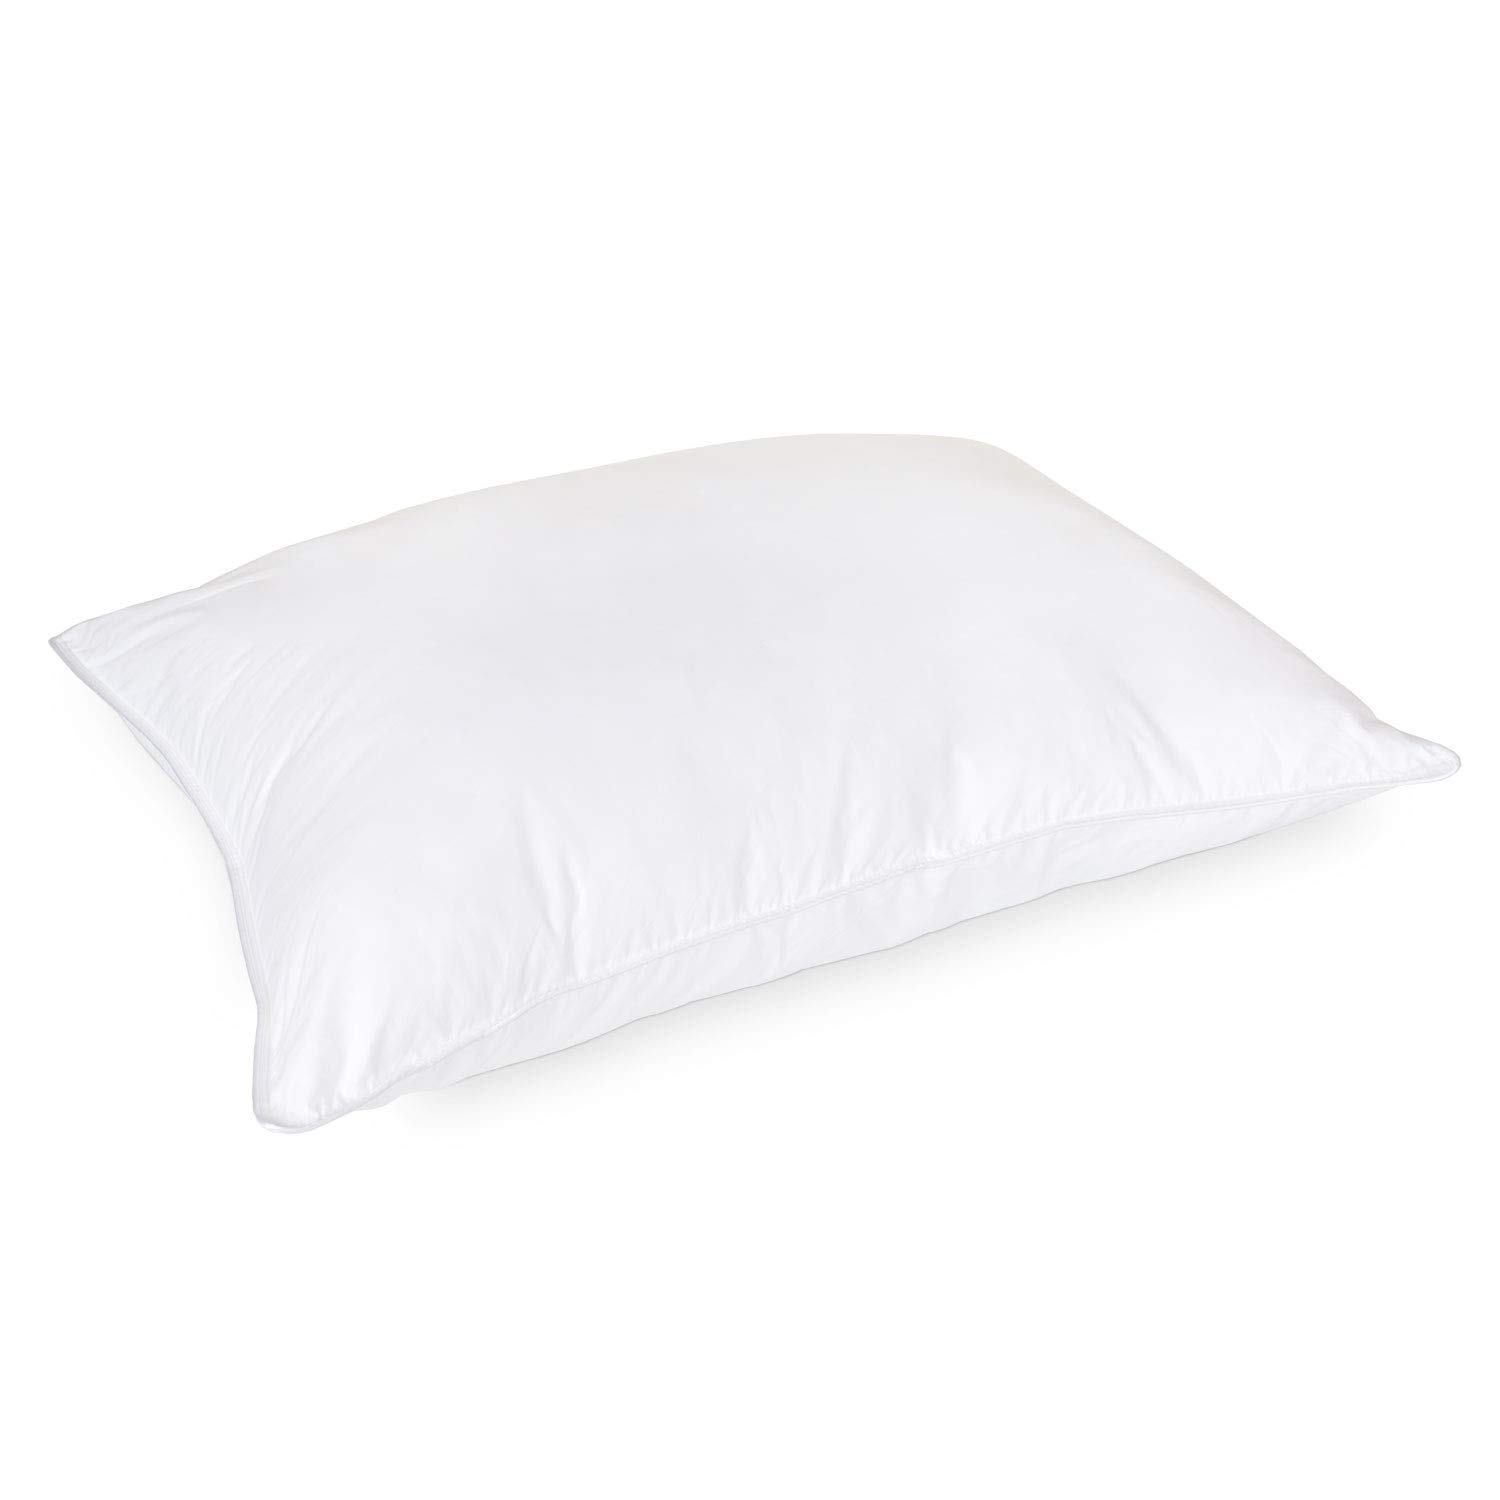 DOWNLITE Luxury Hotel Style 50% Goose Down and 50% Goose Feather Blend Pillow - Medium Density